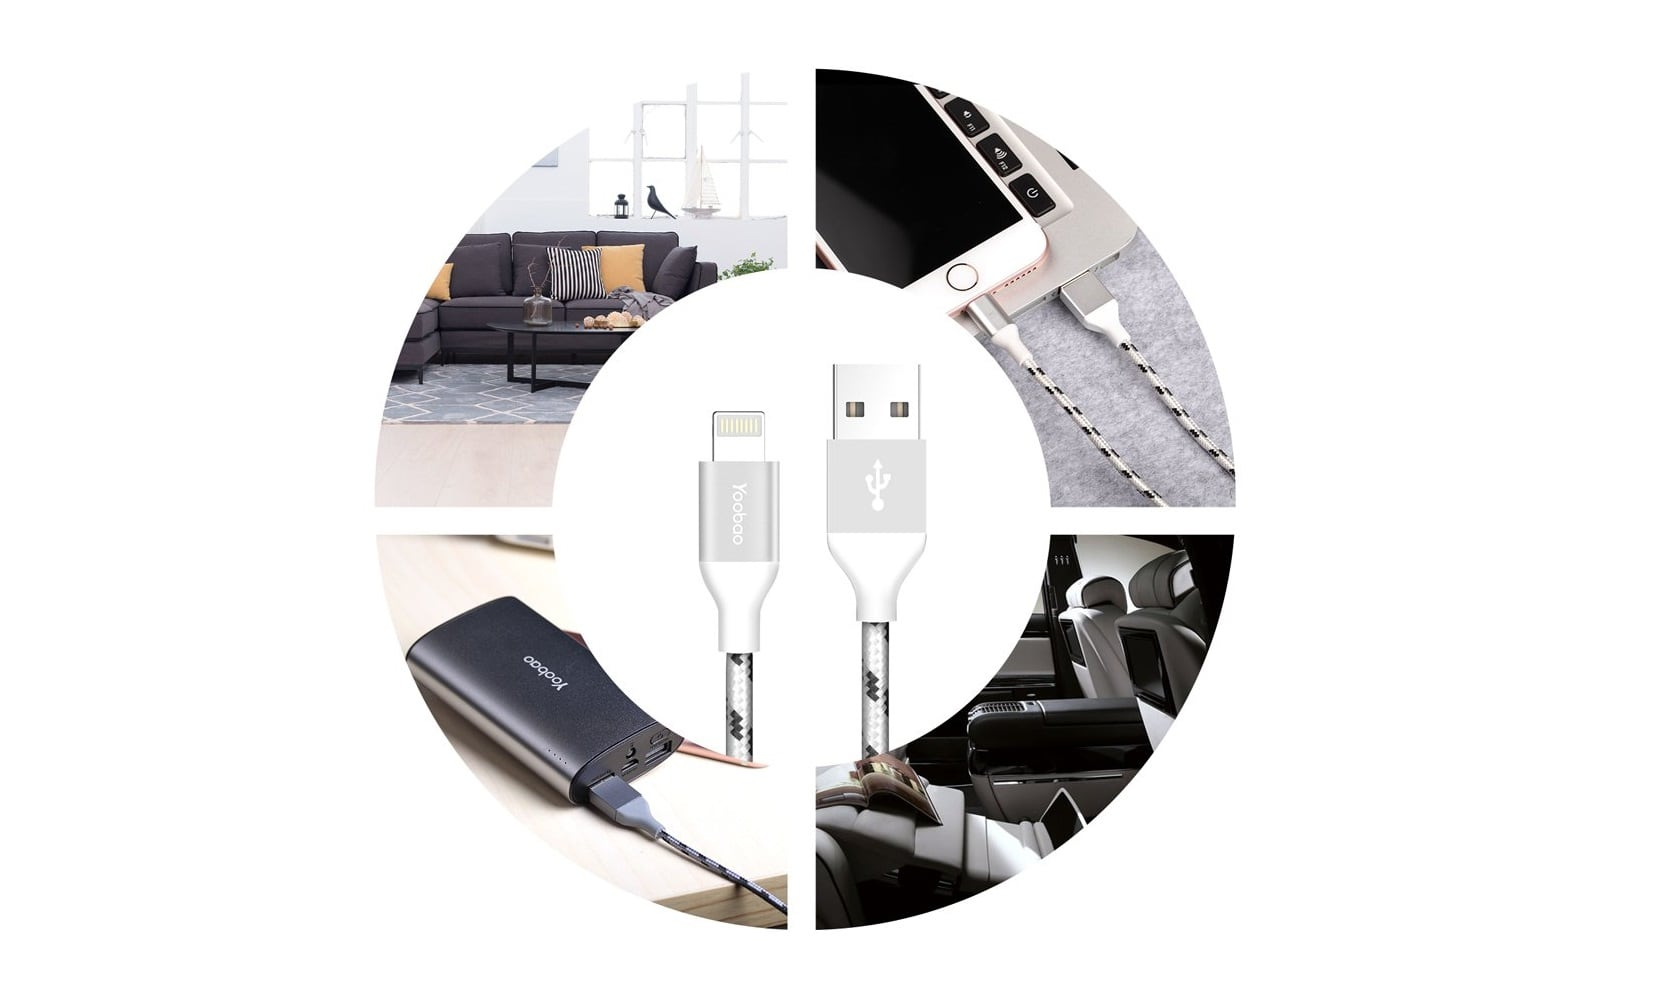 Yoobao lightning cable for iPhone